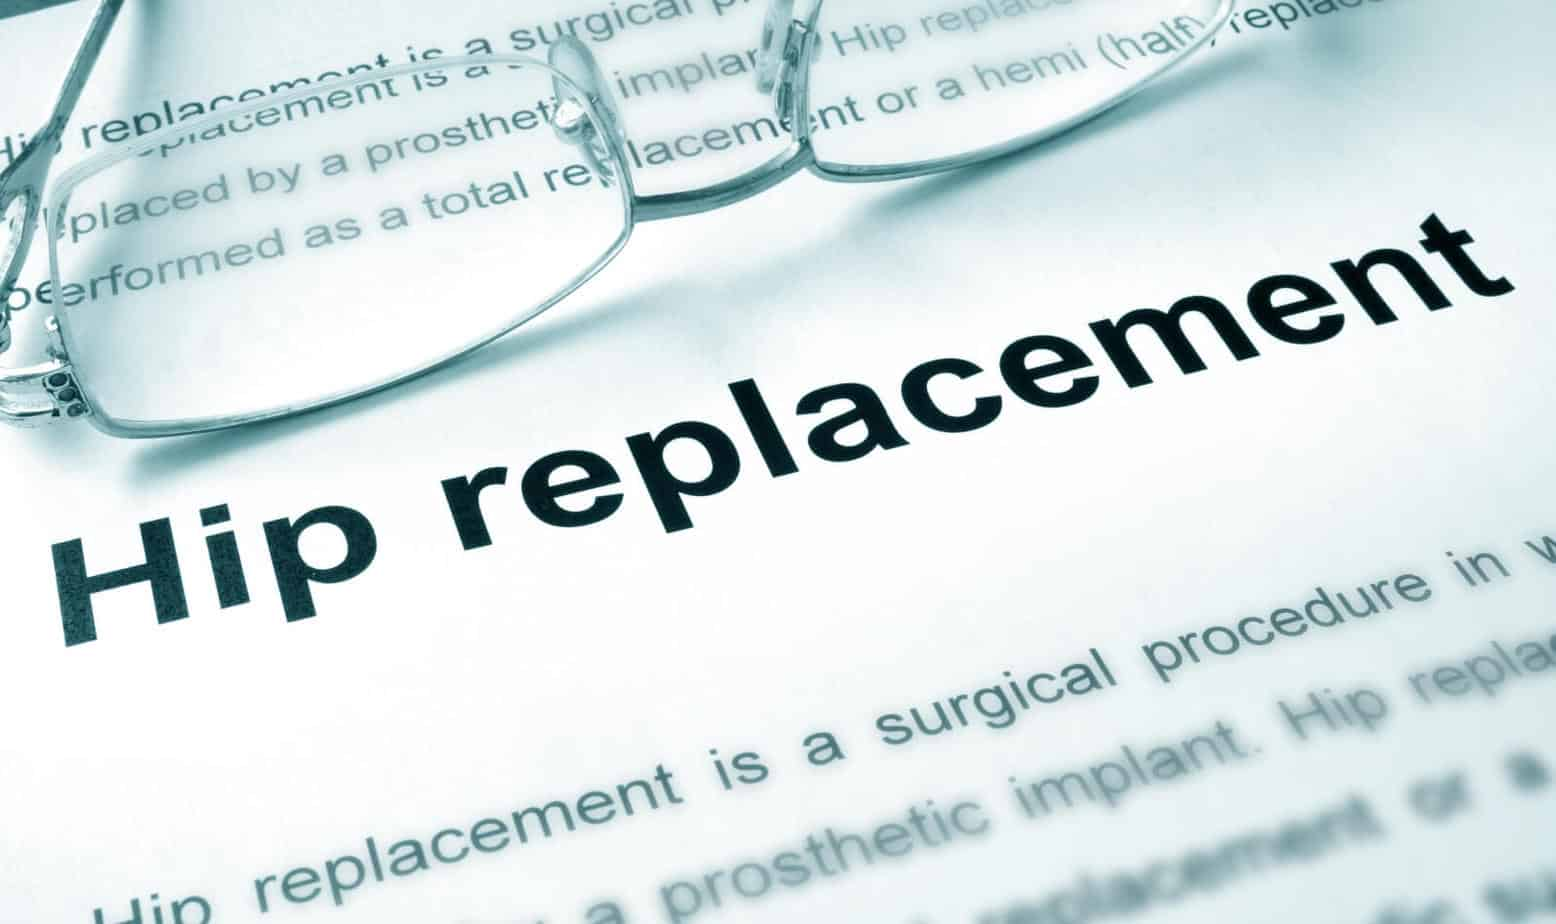 hip replacement typed in a paper